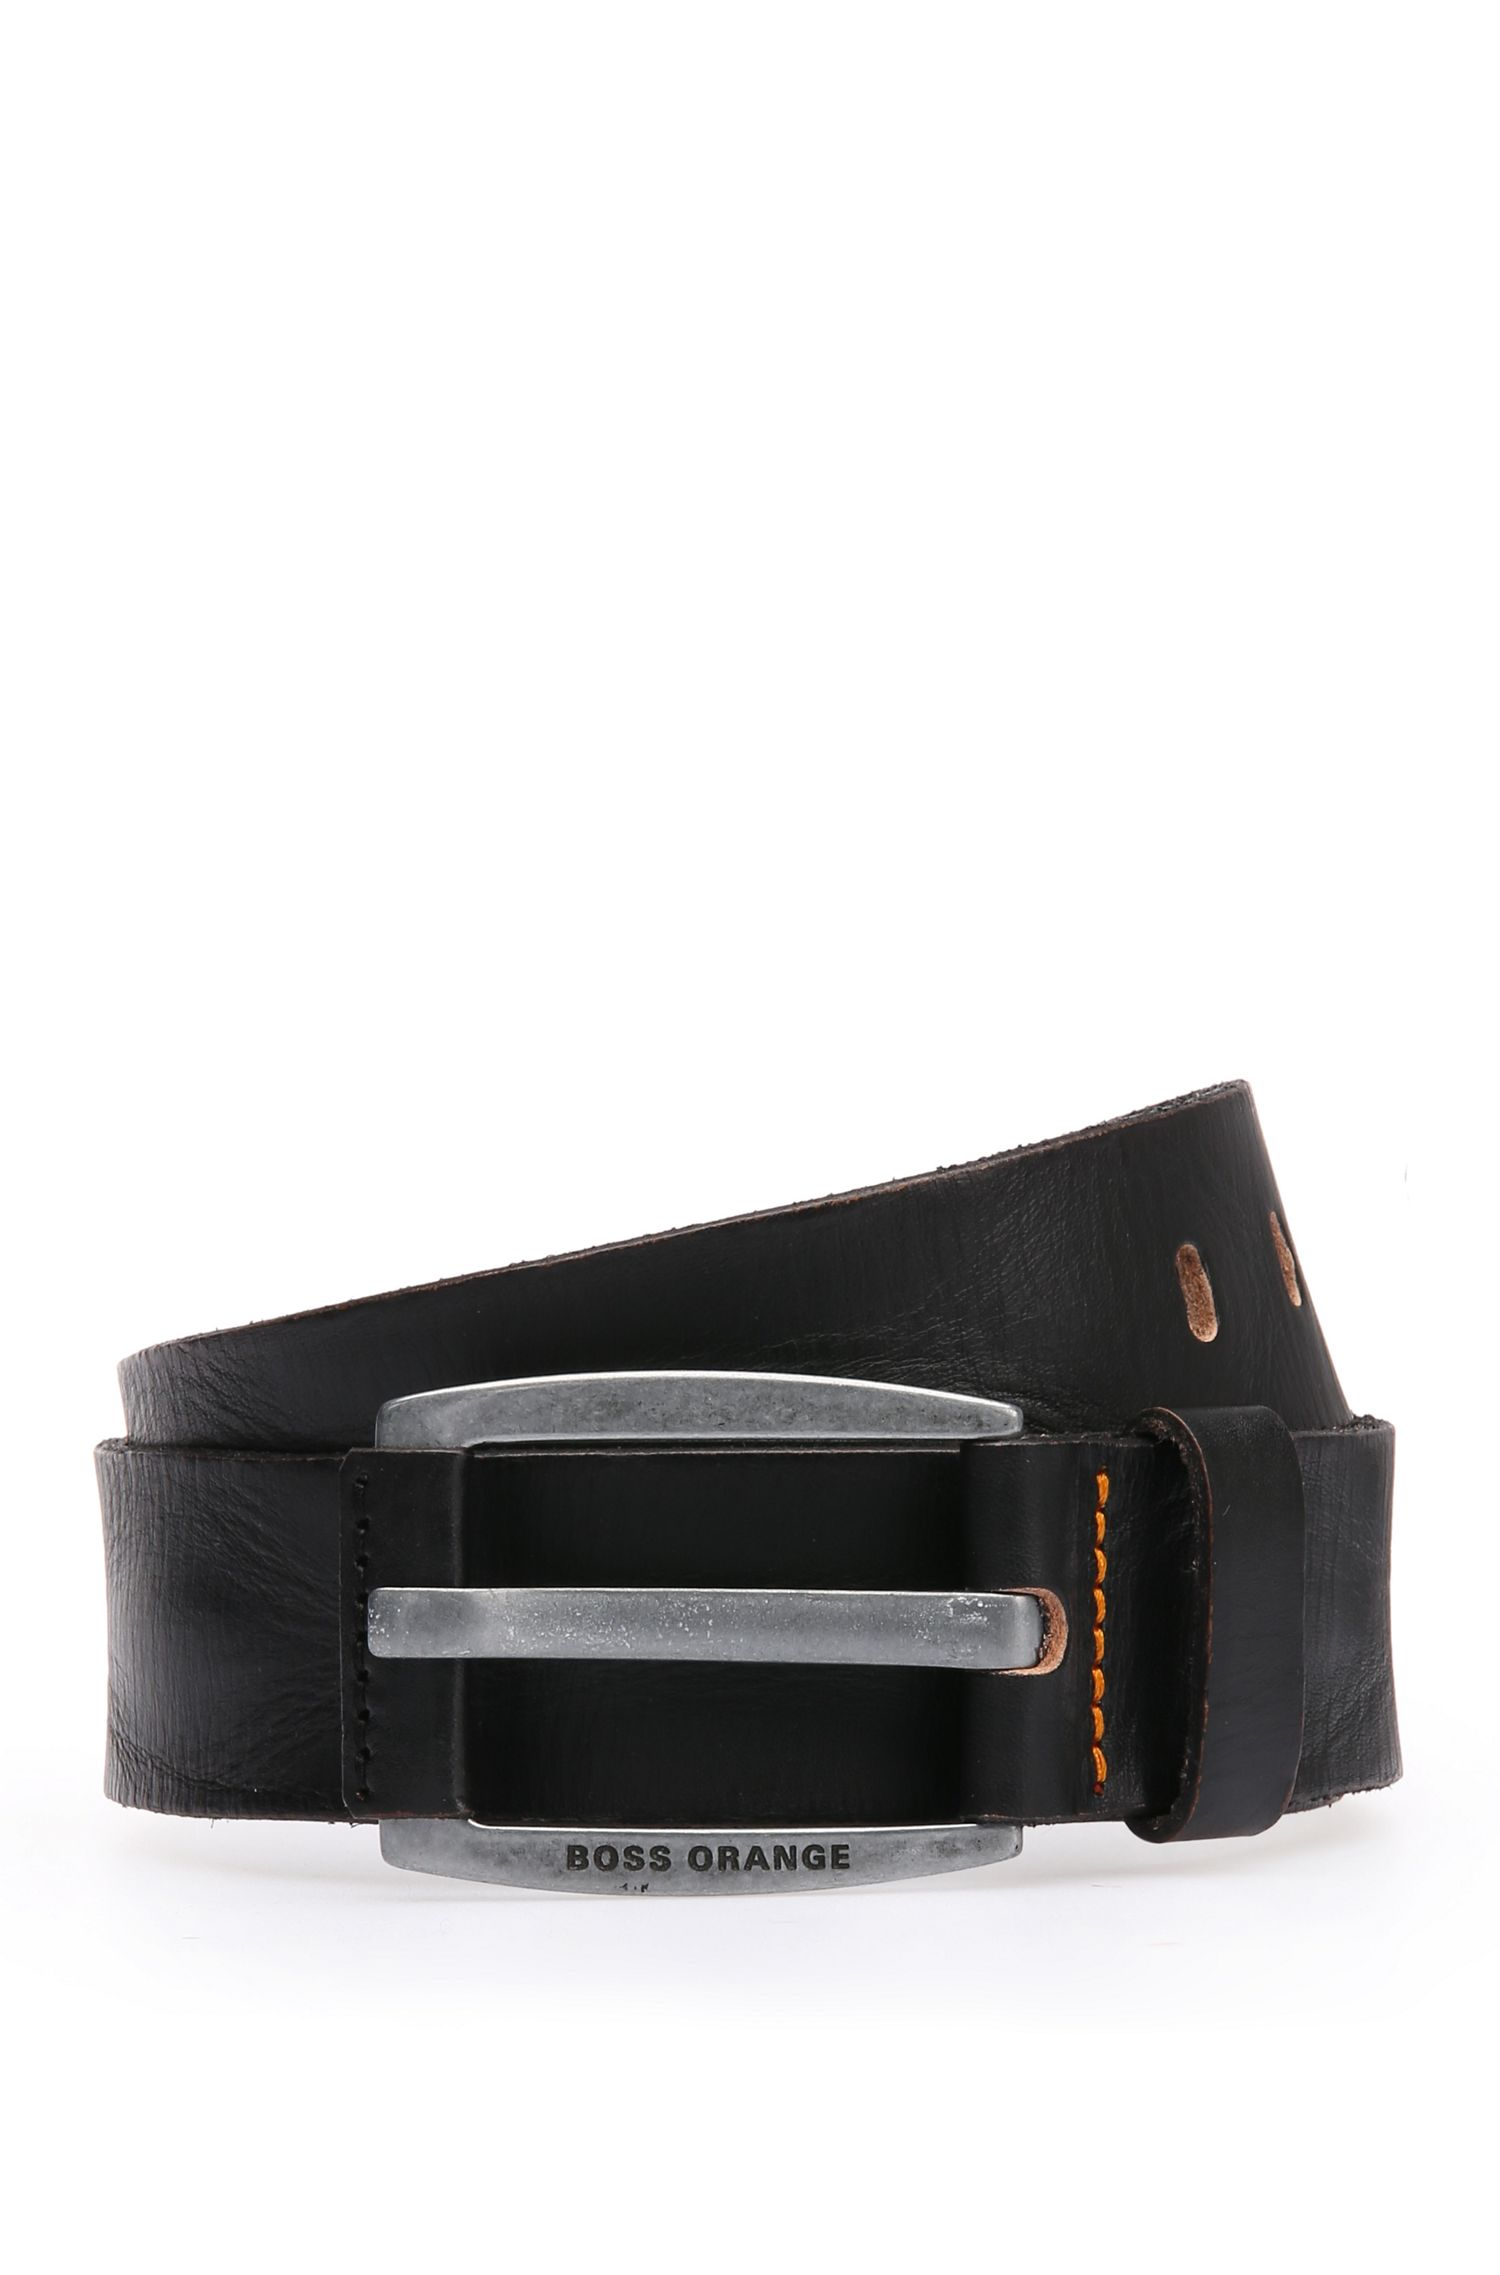 Leather belt with vintage-inspired buckle